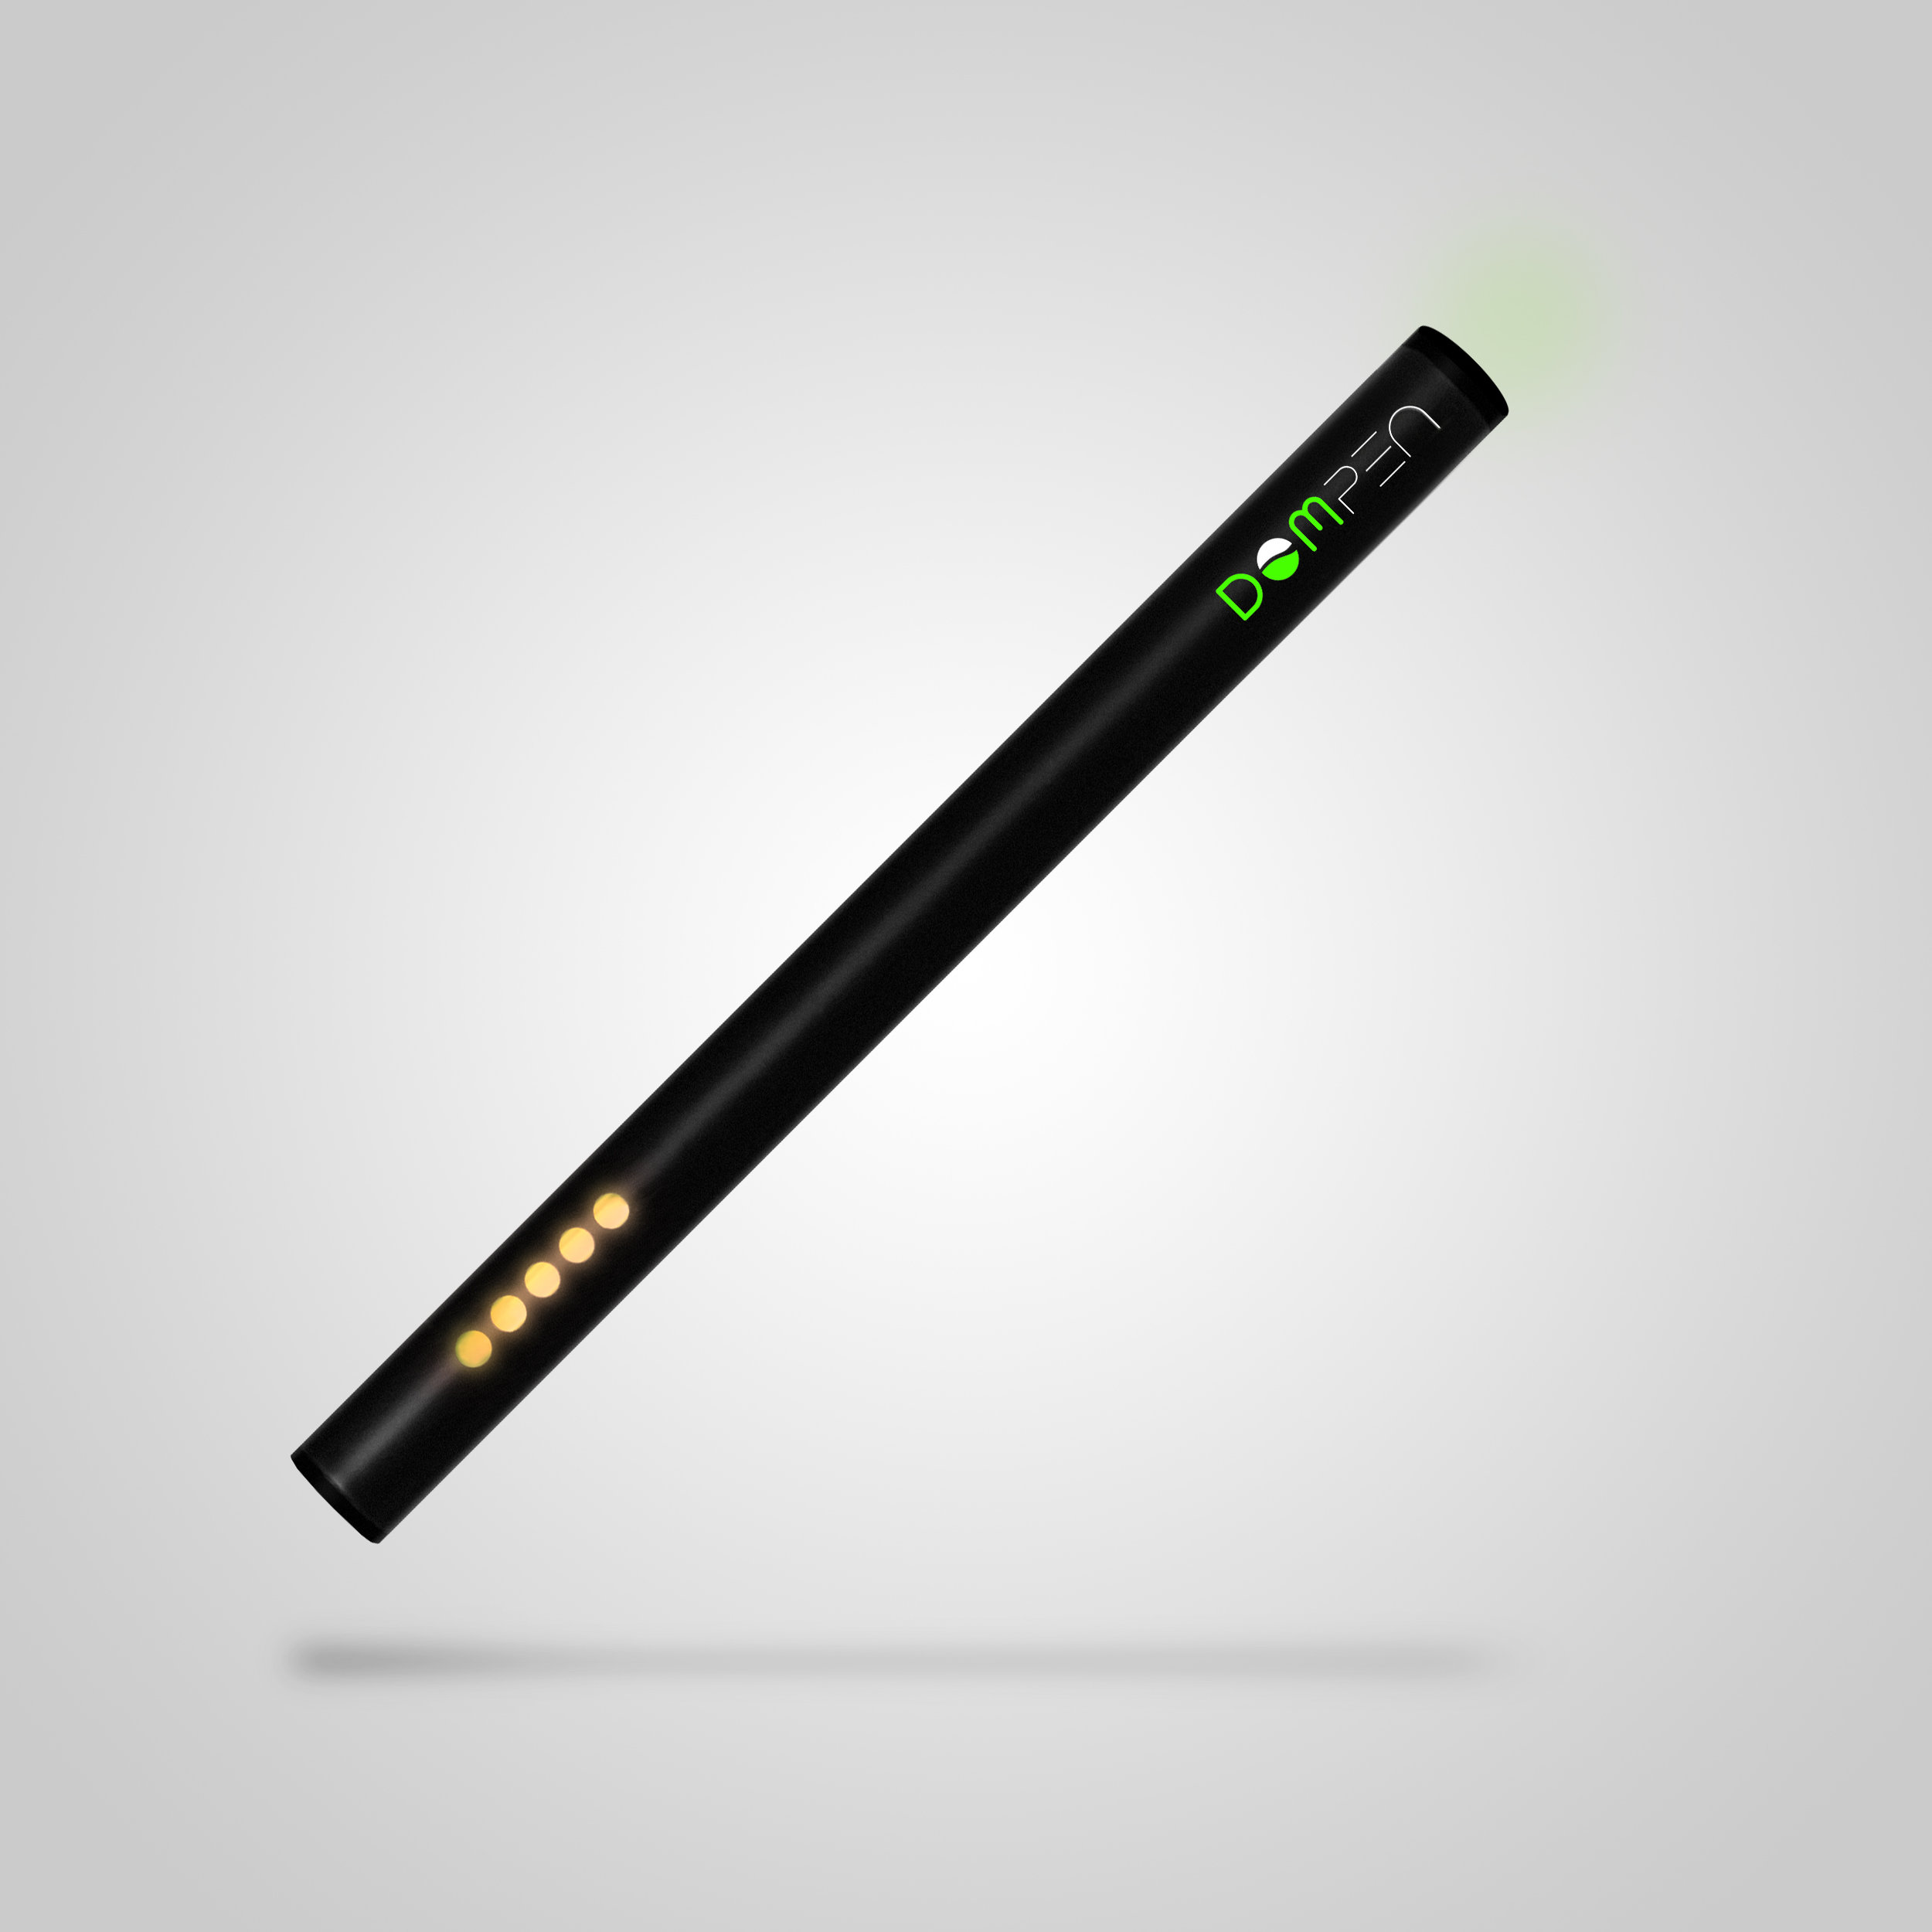 DomPen BOGO - Buy one DomPen, get one for a penny